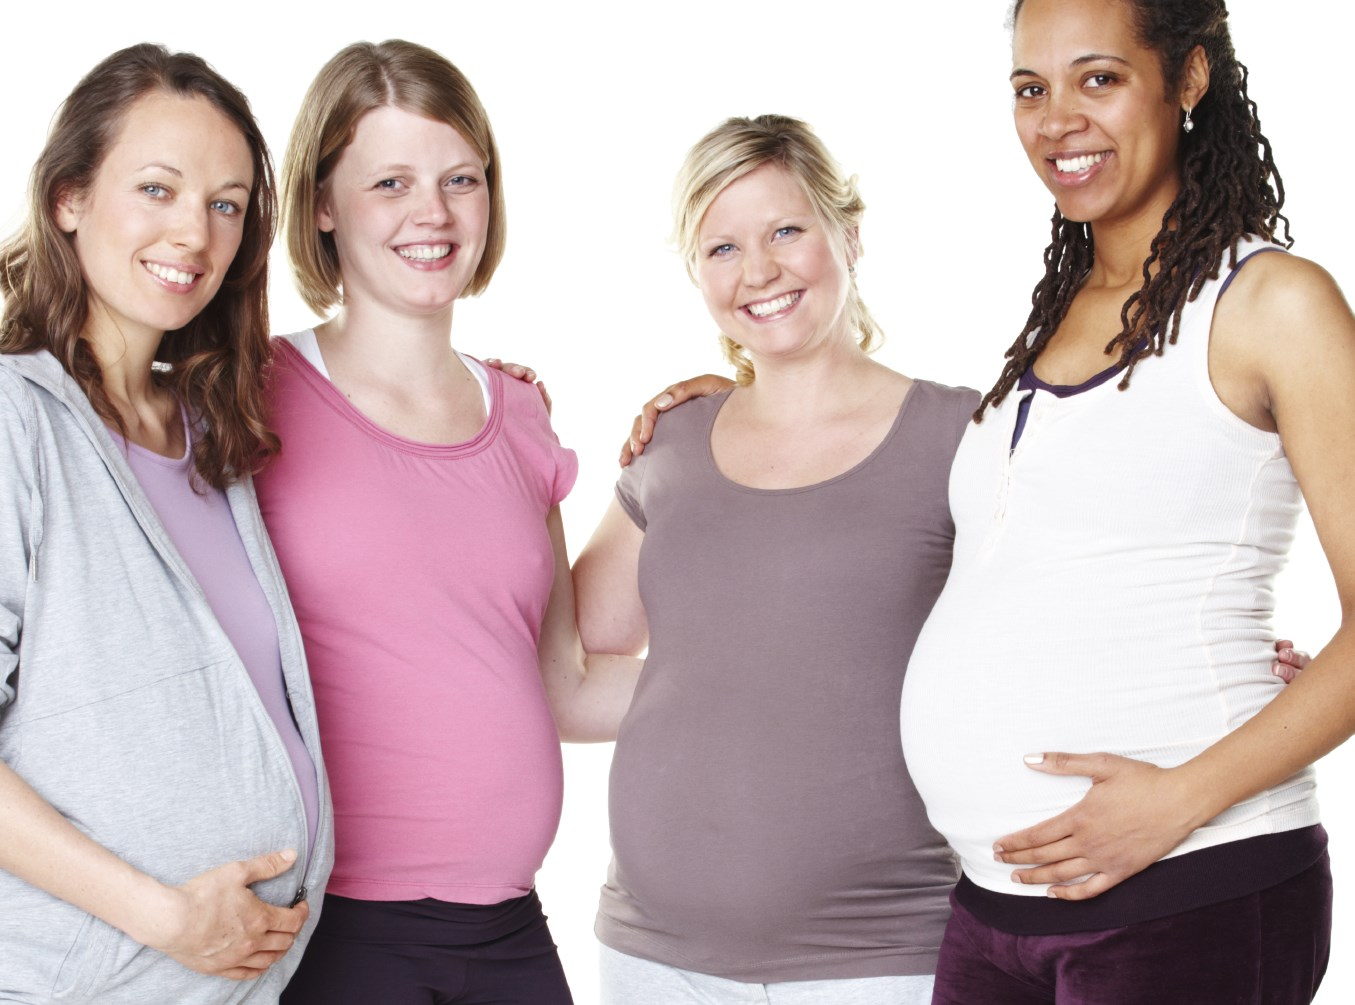 Nine Women Can't Make a Baby In One Month